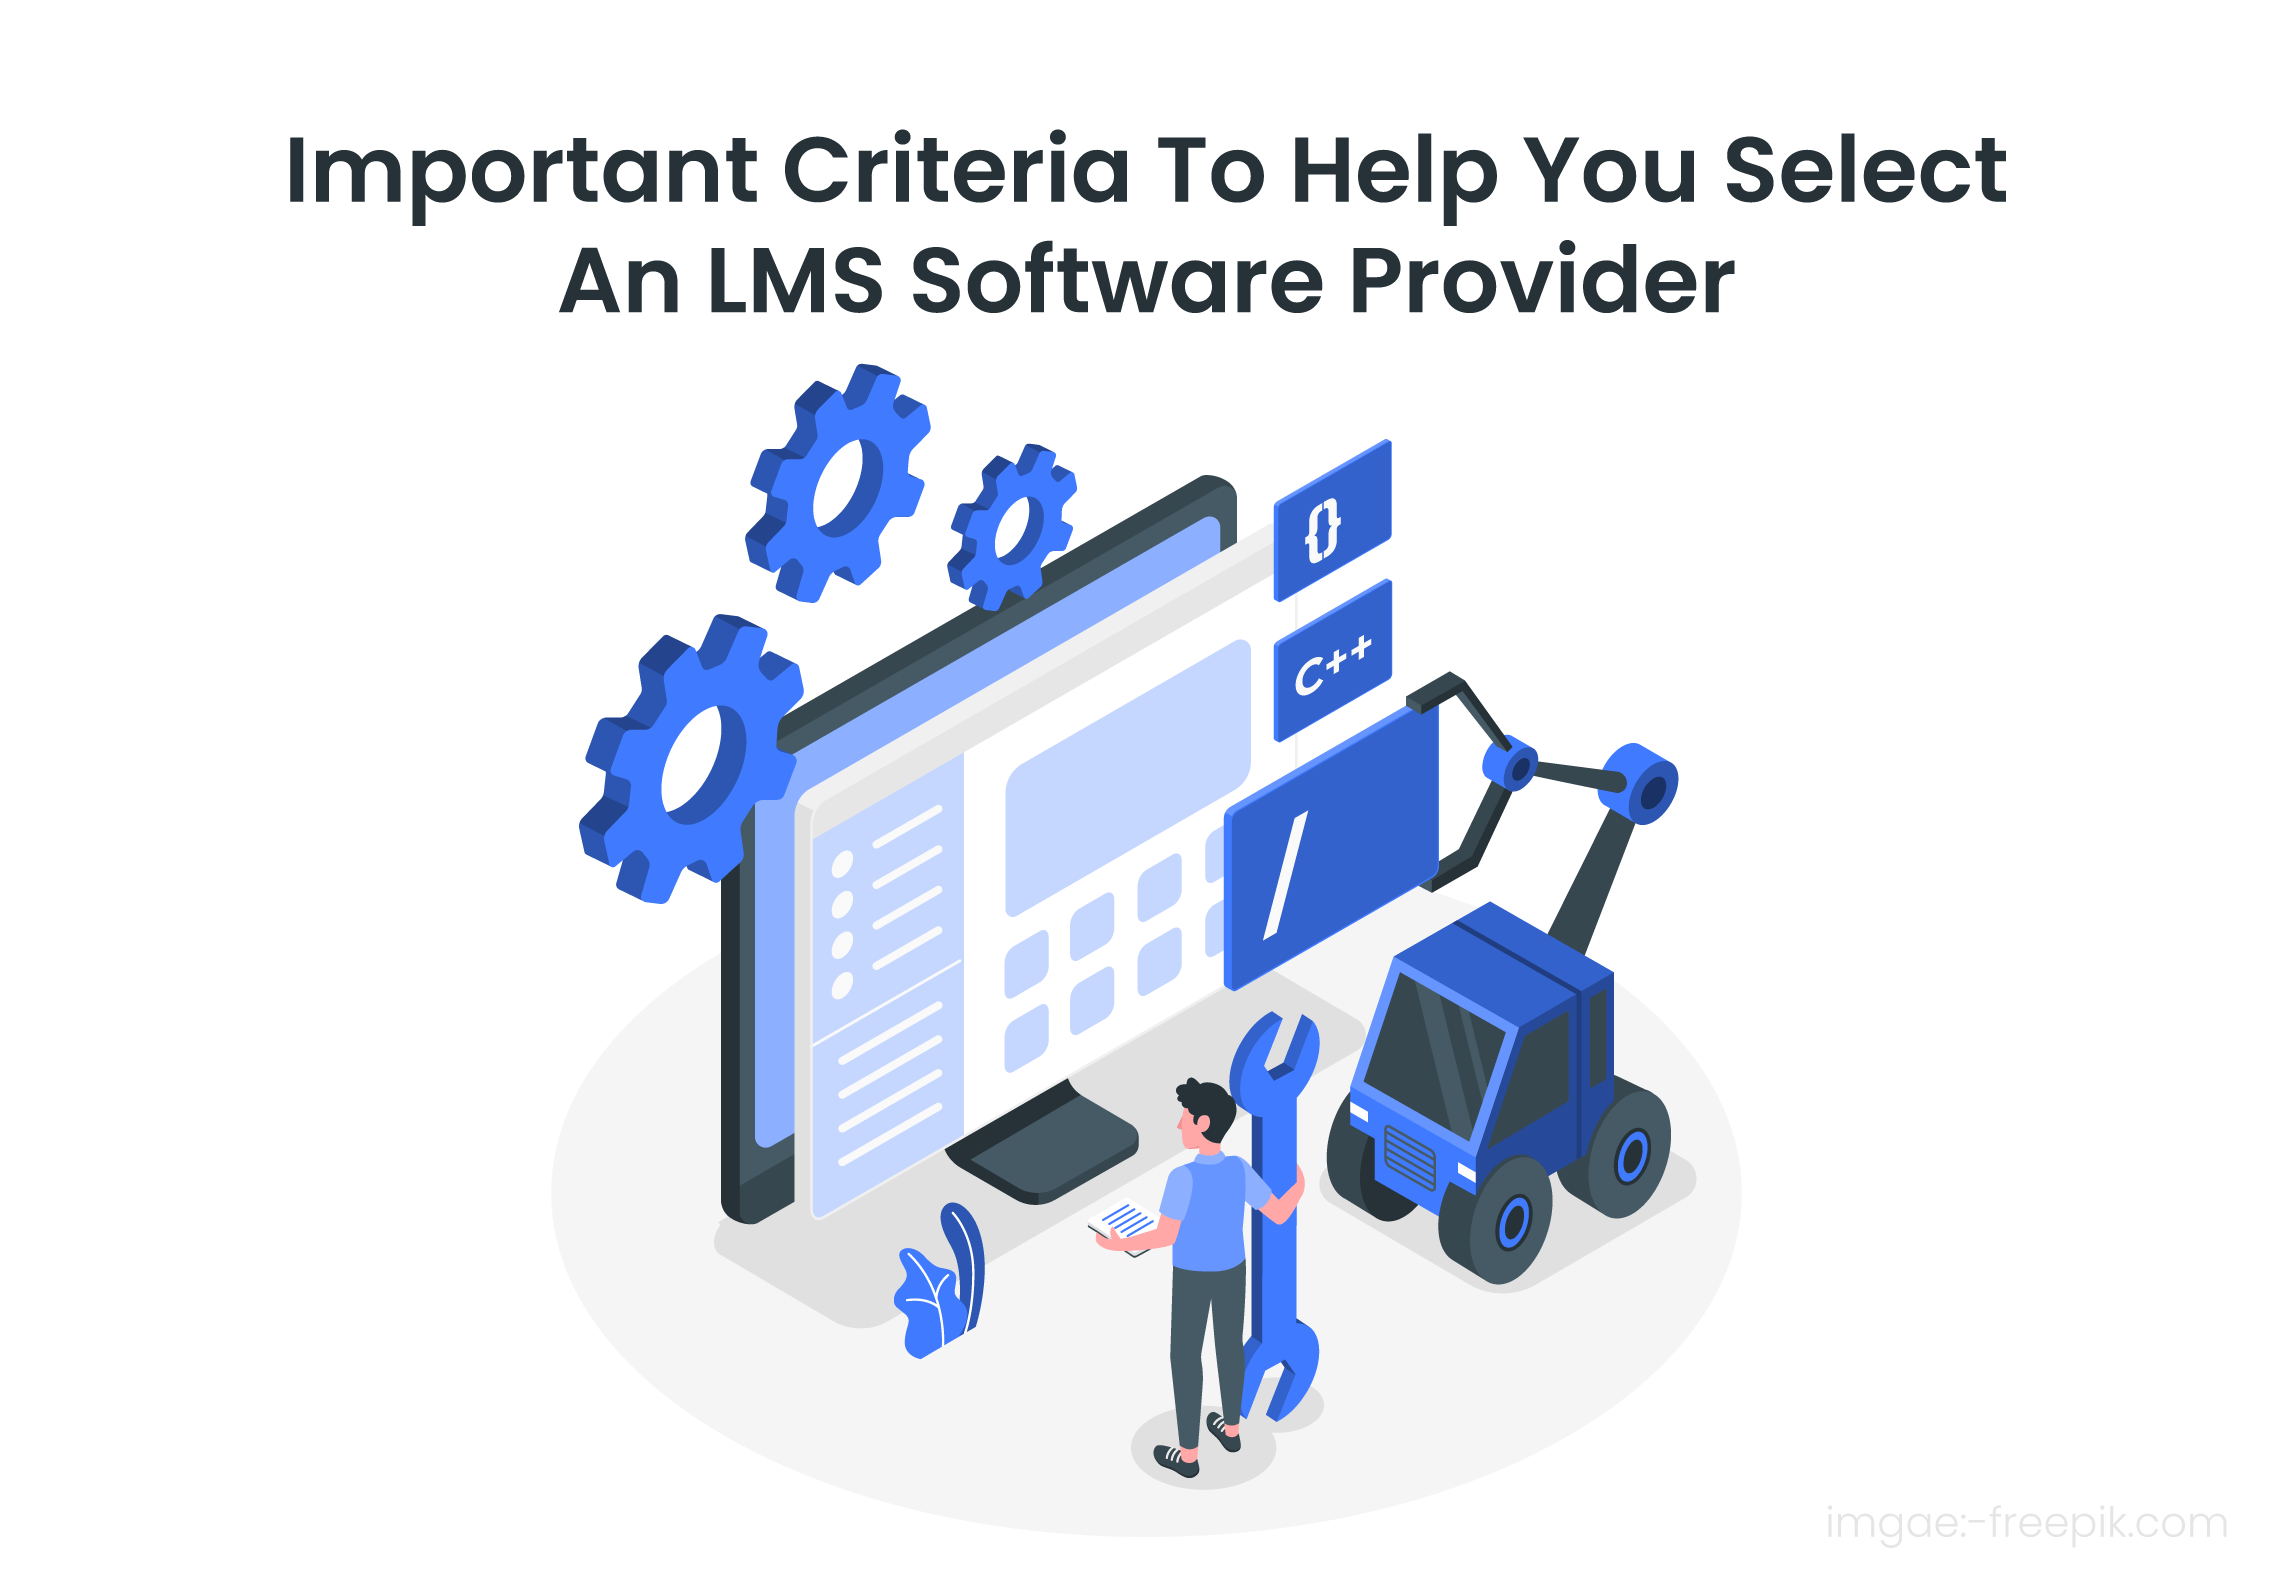 How Do You Select An LMS Provider To Grow Your Business?